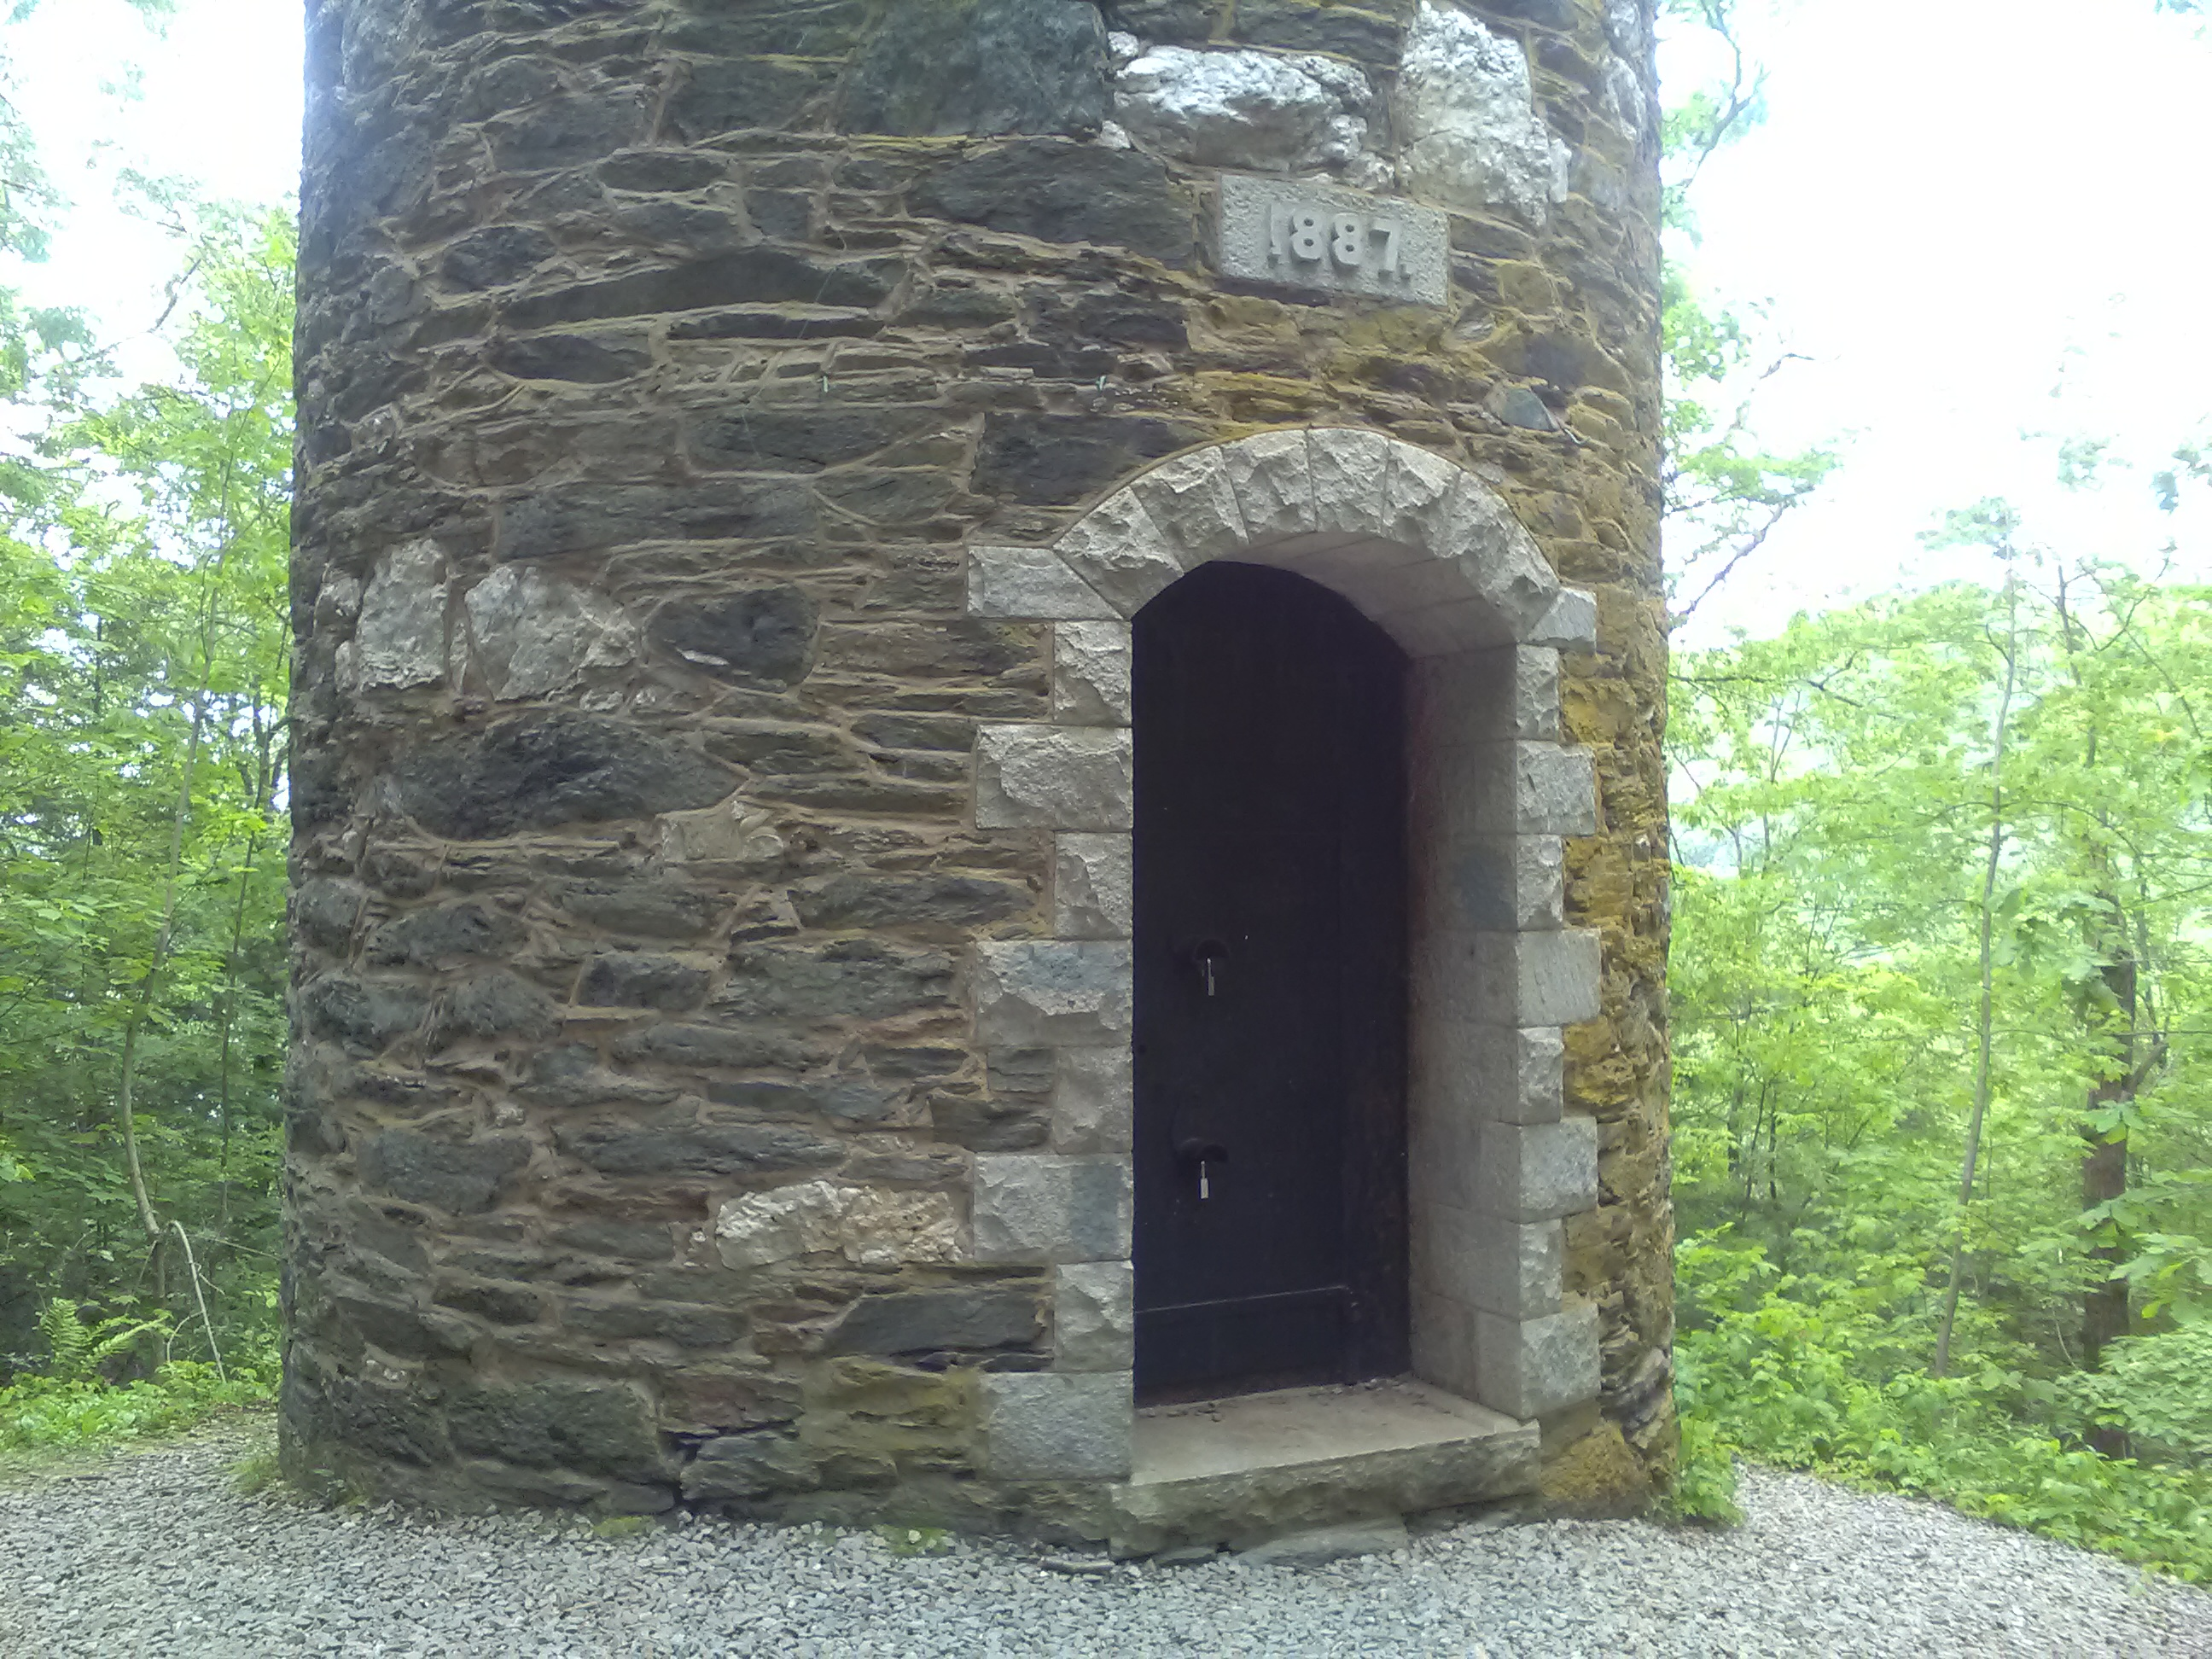 Take a Hike – Historical Retreat Tower in Brattelboro, VT